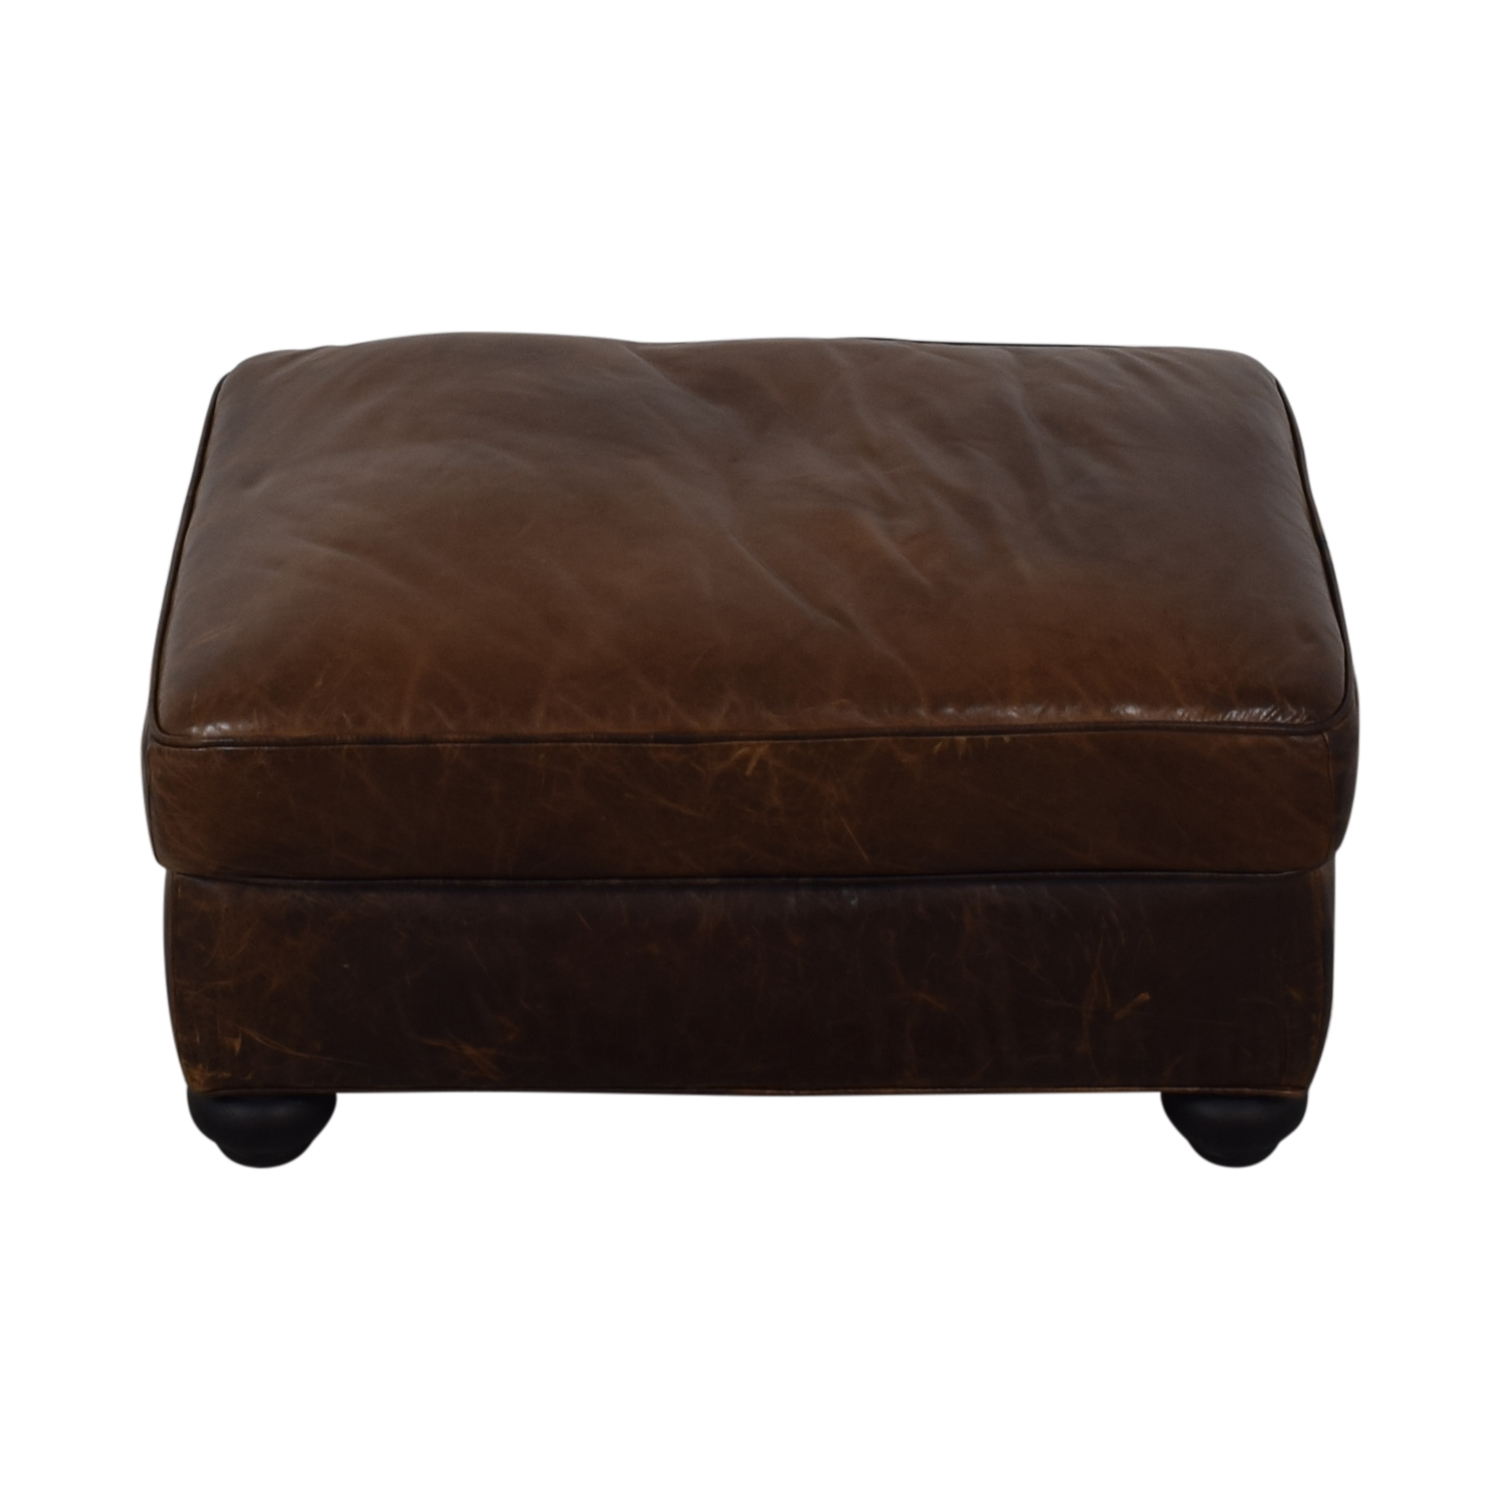 Restoration Hardware Lancaster Leather Ottoman / Ottomans